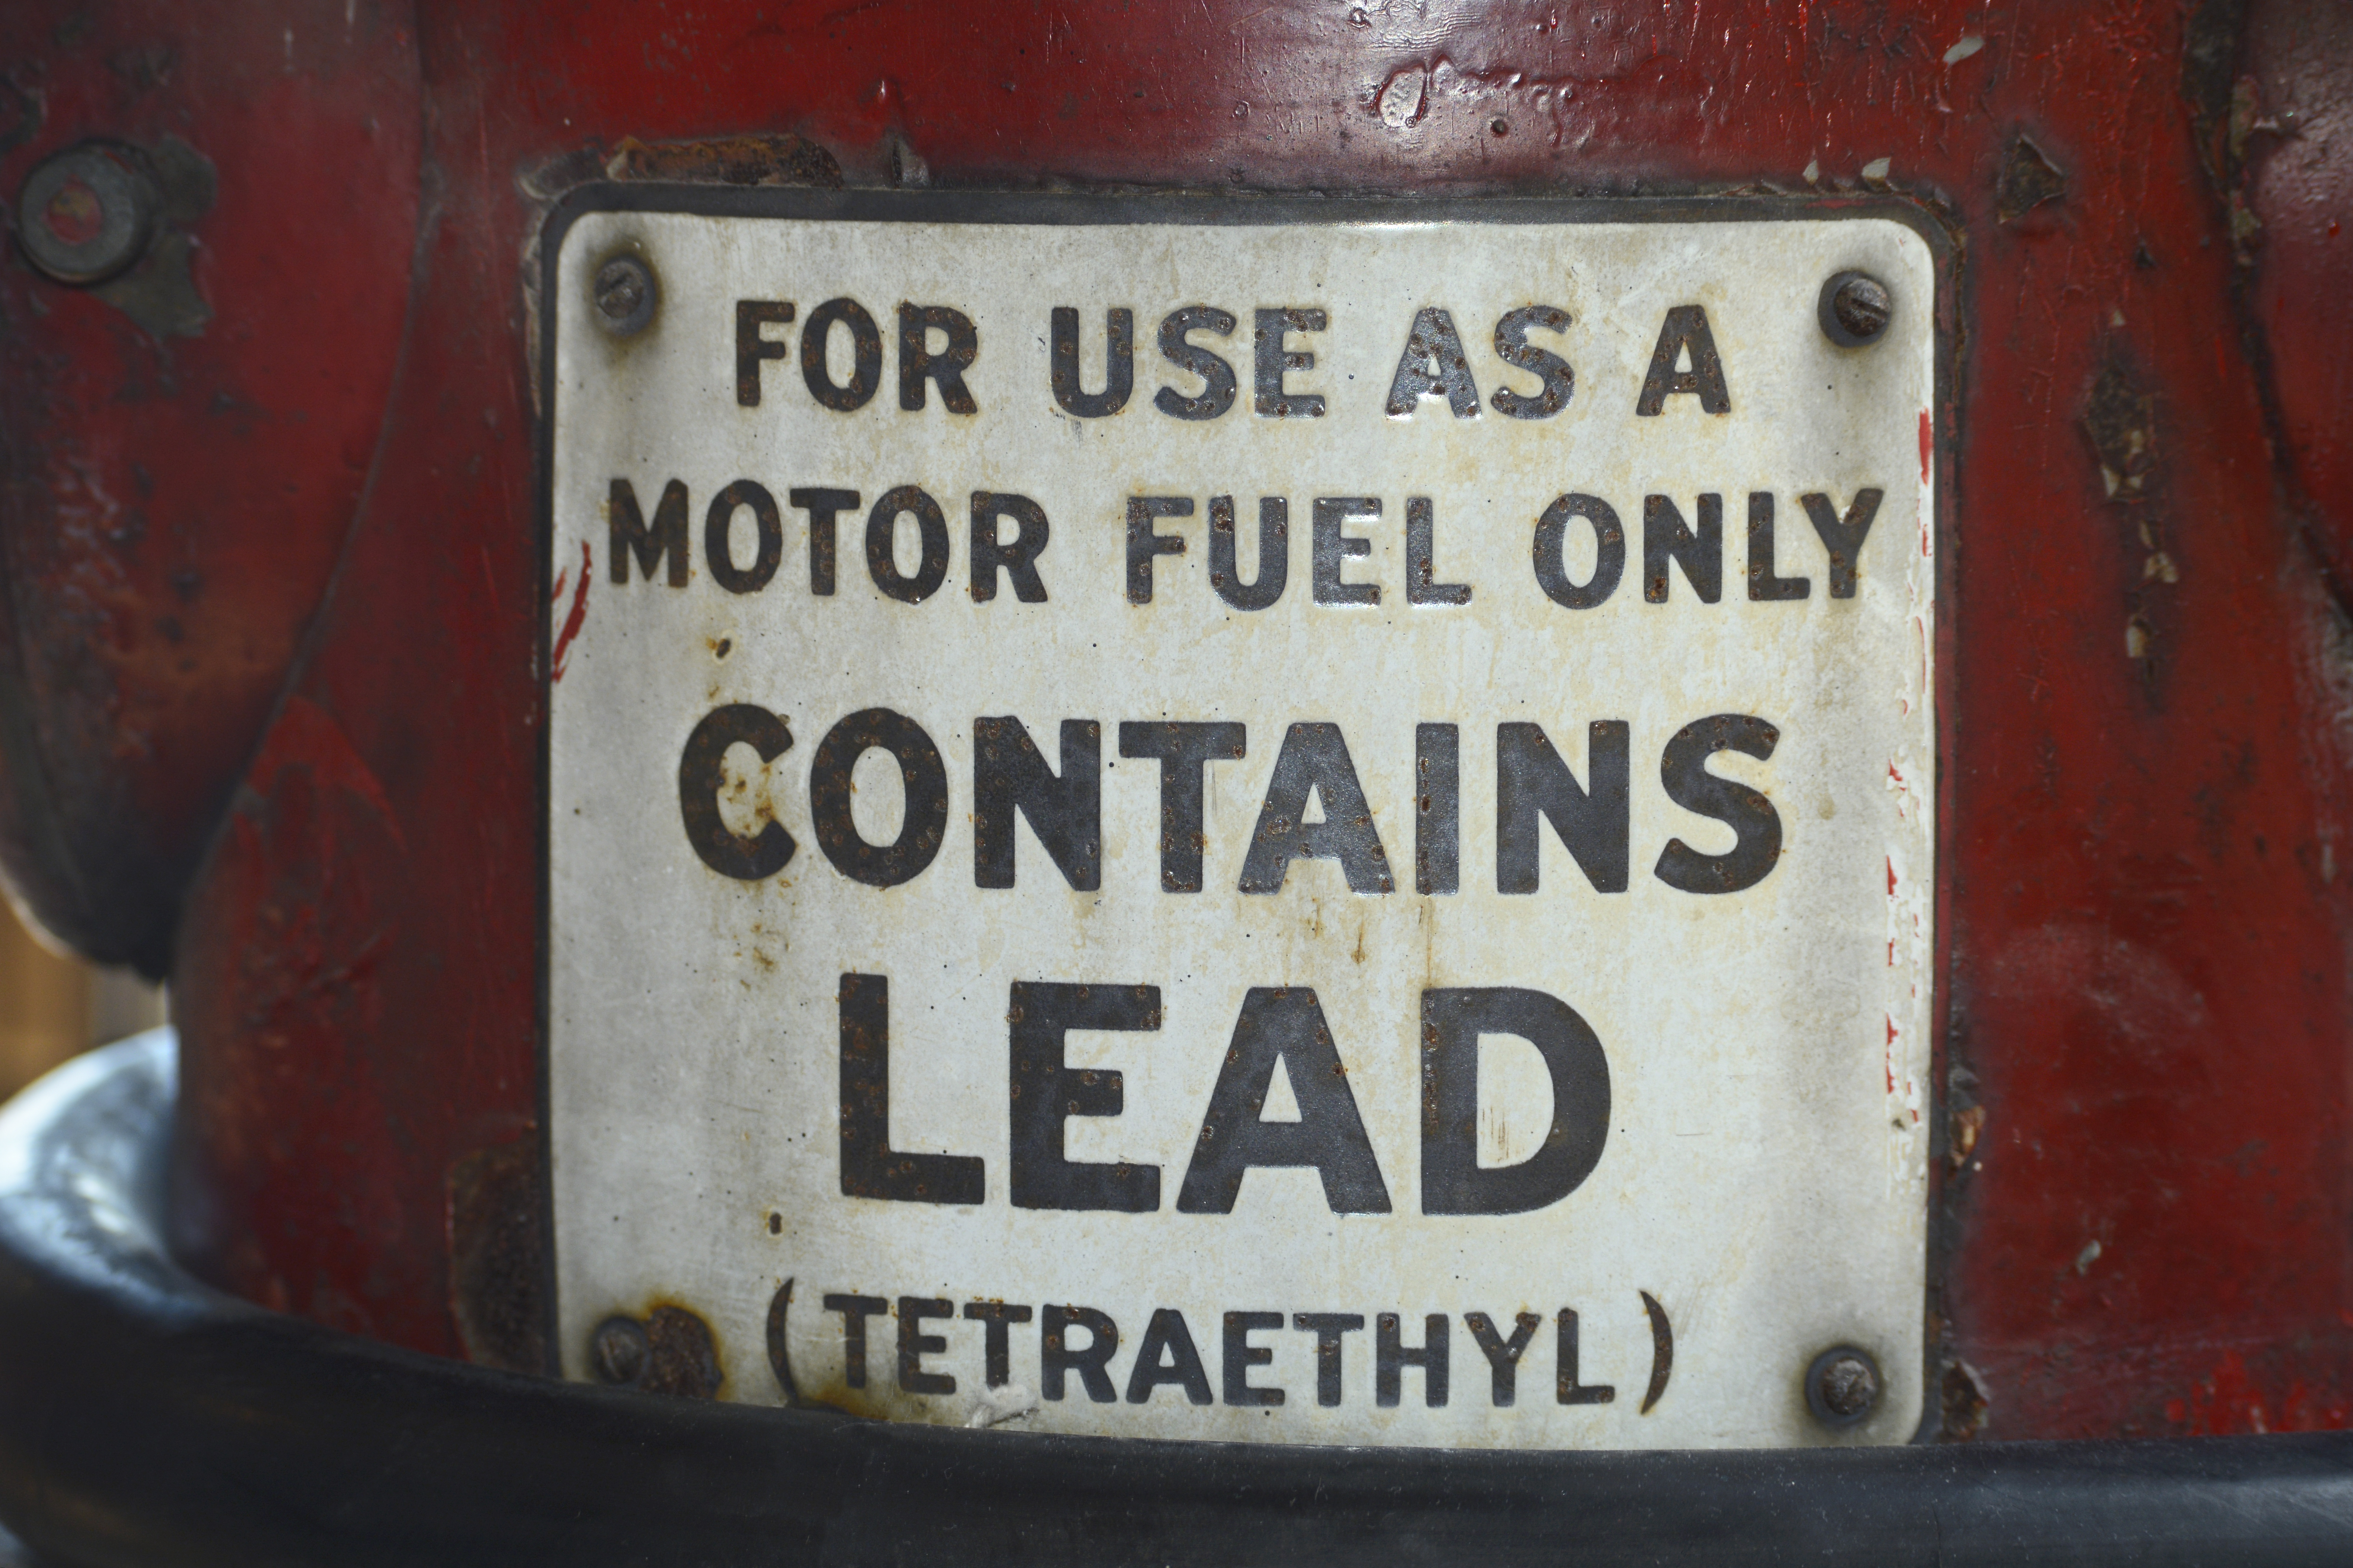 A sign on a vintage gasoline pump advises that the gas contains lead (tetraethyl).